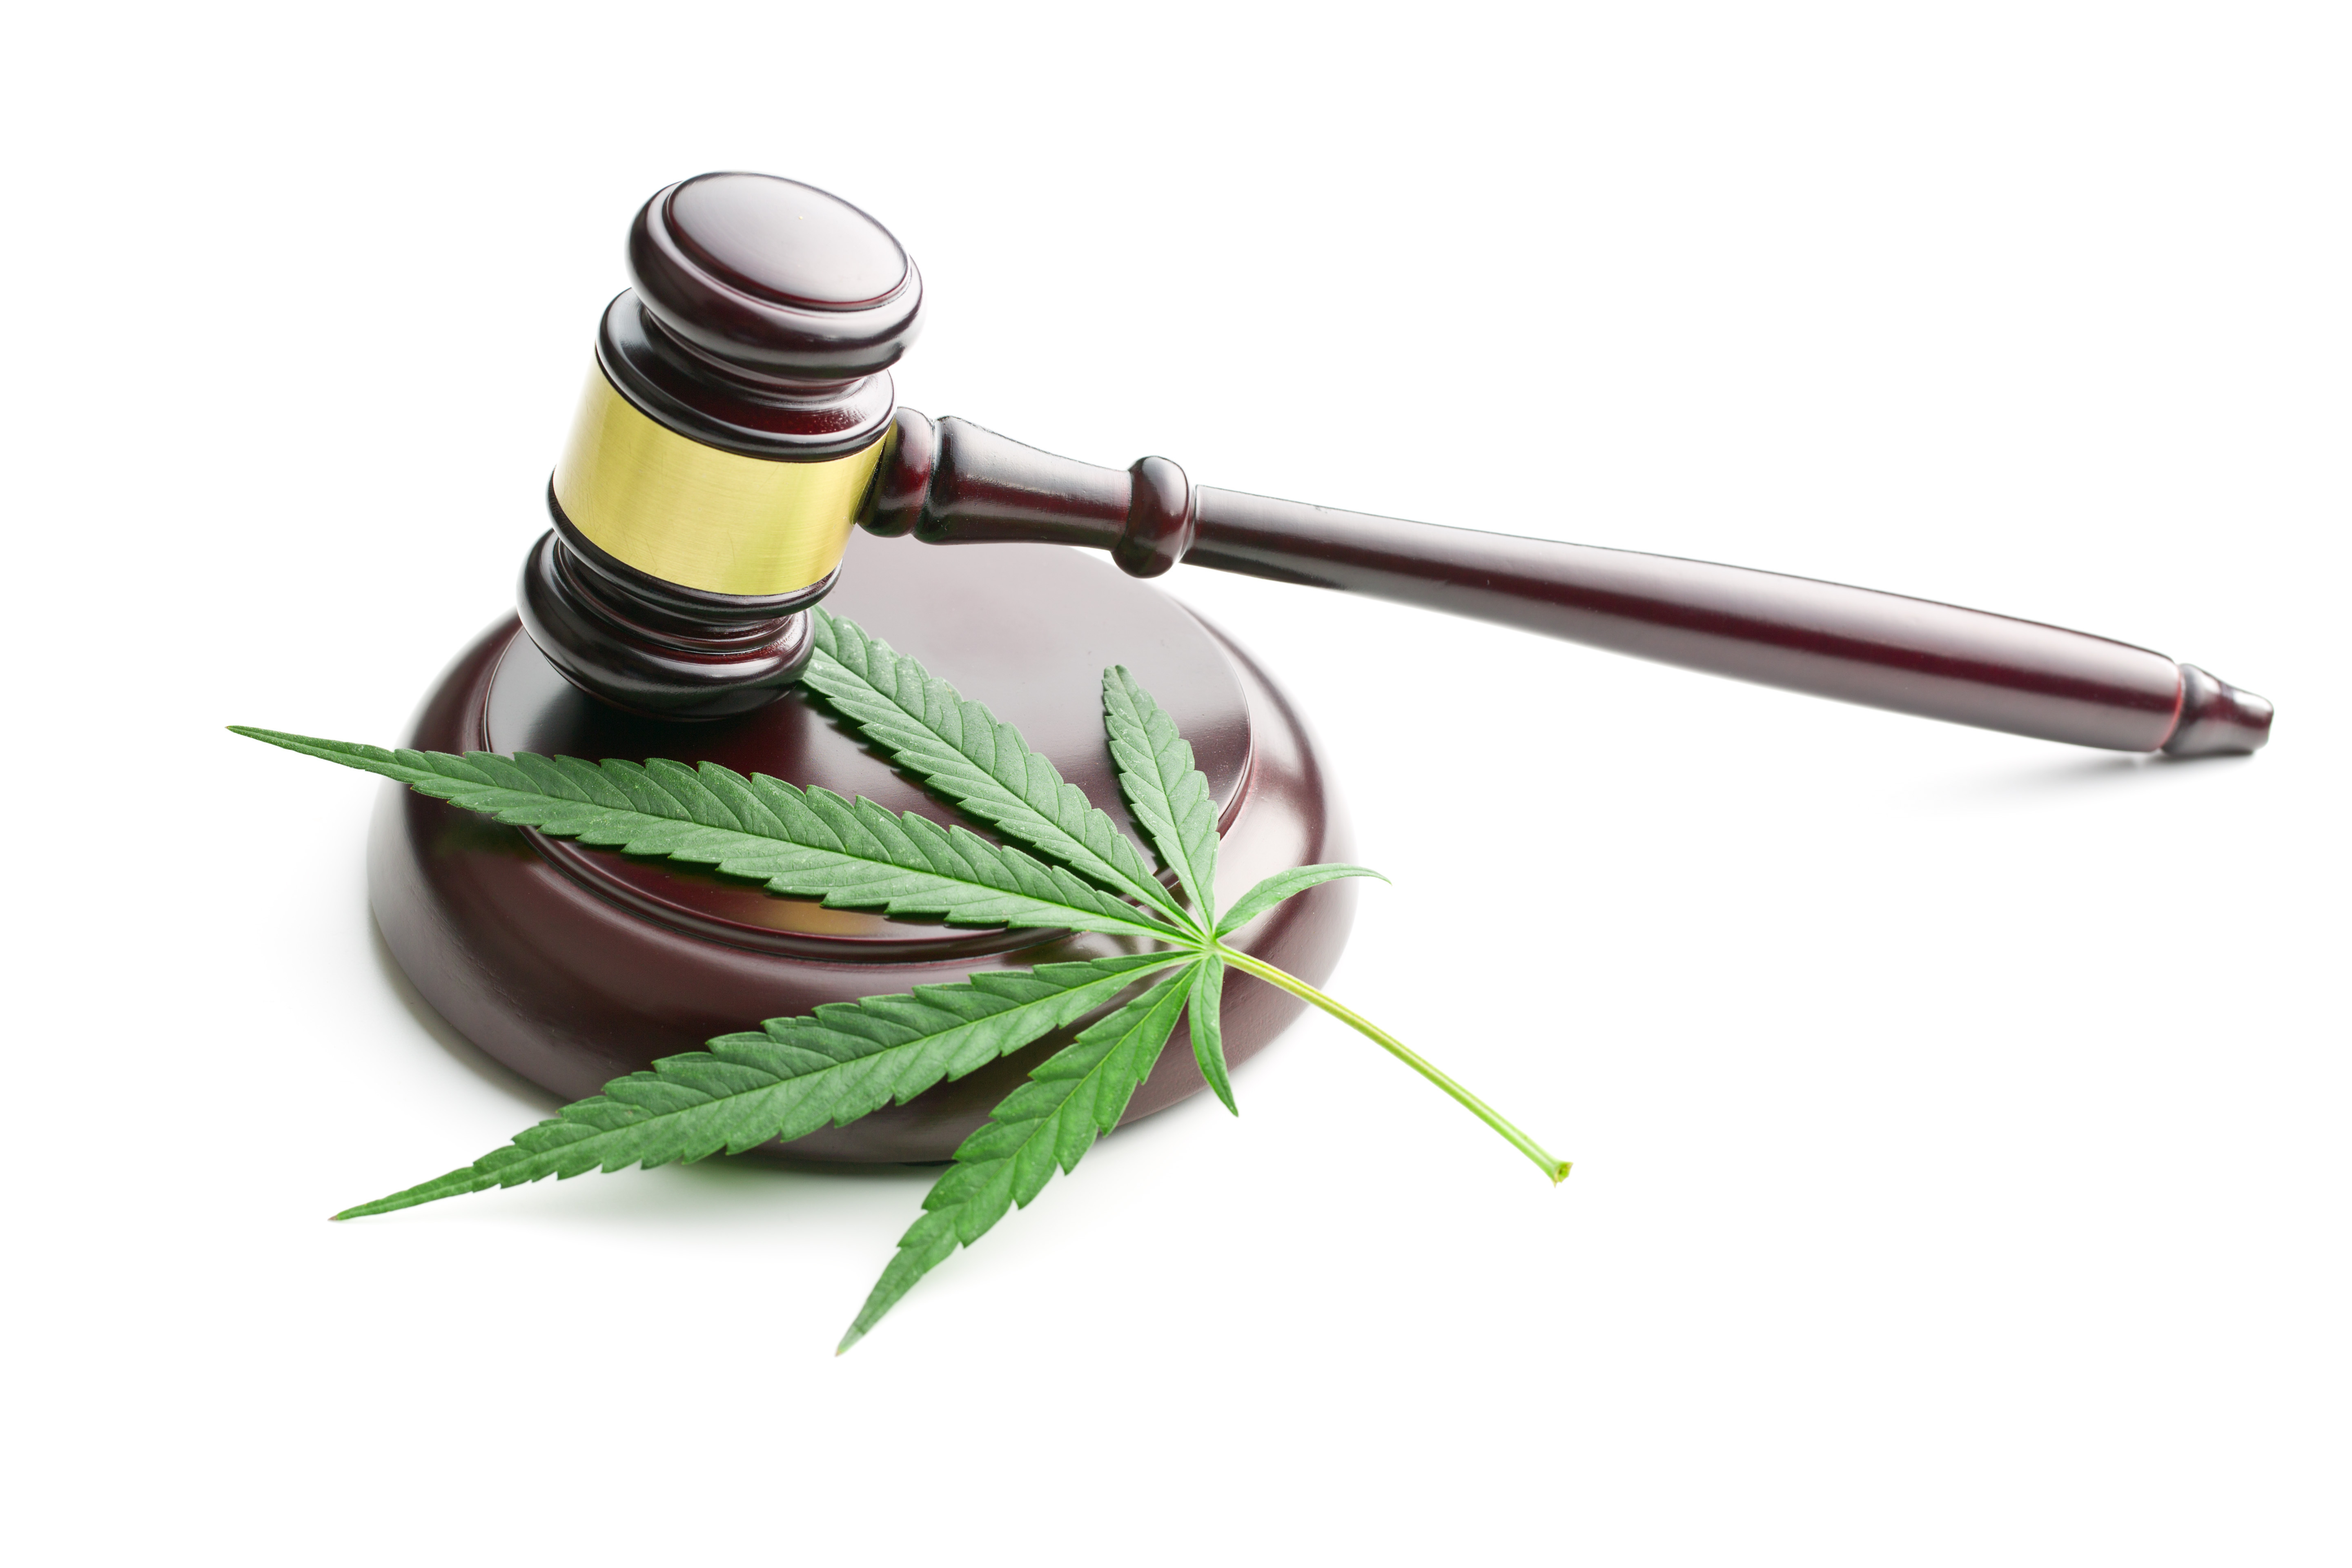 Tenants and Marijuana - What's a landlord to do? - Insights for Your Industry